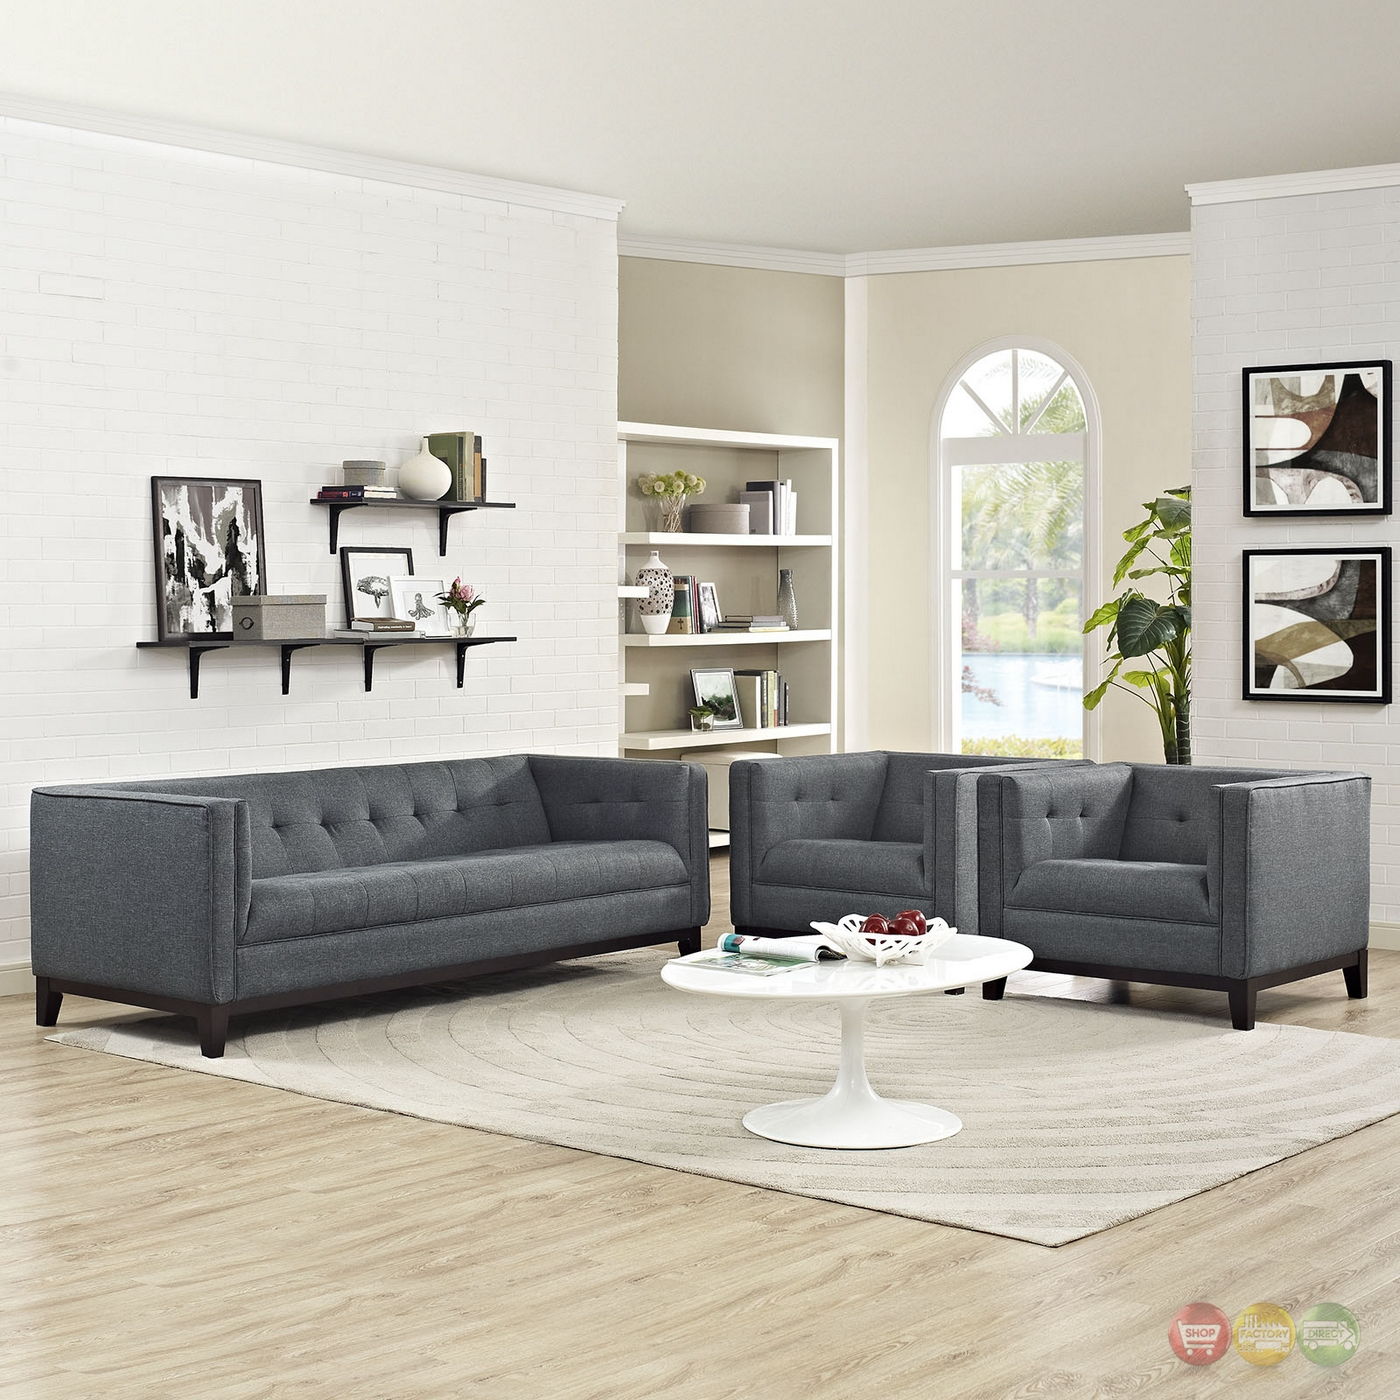 Upholstered living room sets modern house for Modern living room sets